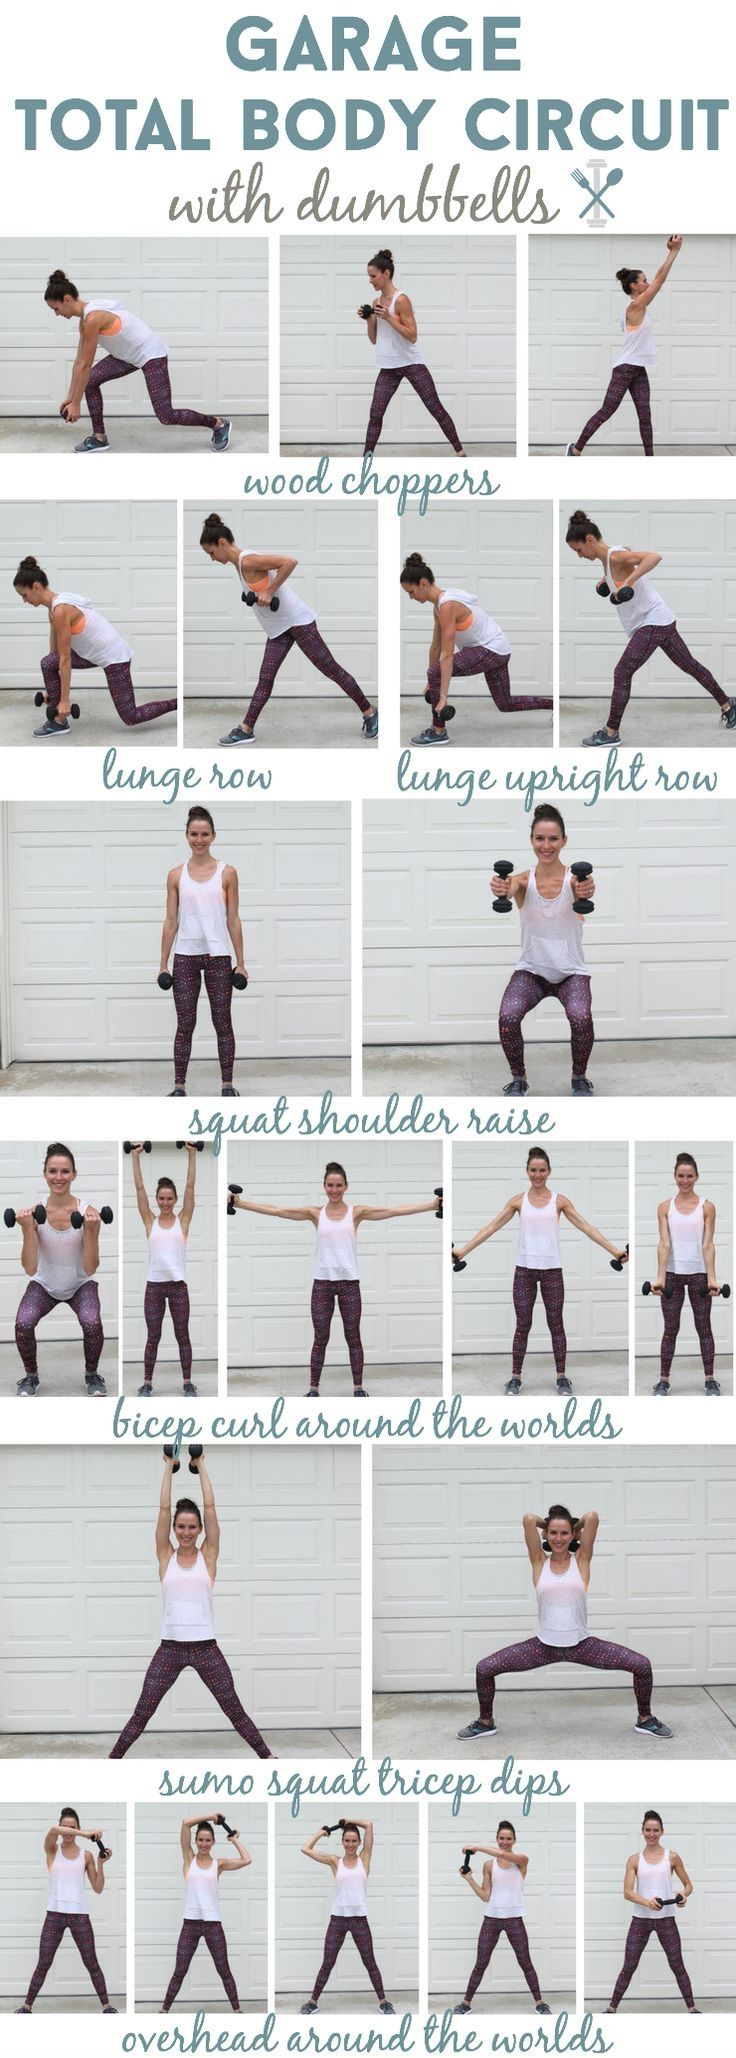 This total body workout with dumbbells is one you can complete at home in your garage, or if you hit the gym! All over toning and sculpting #weightlossbeforeandafter